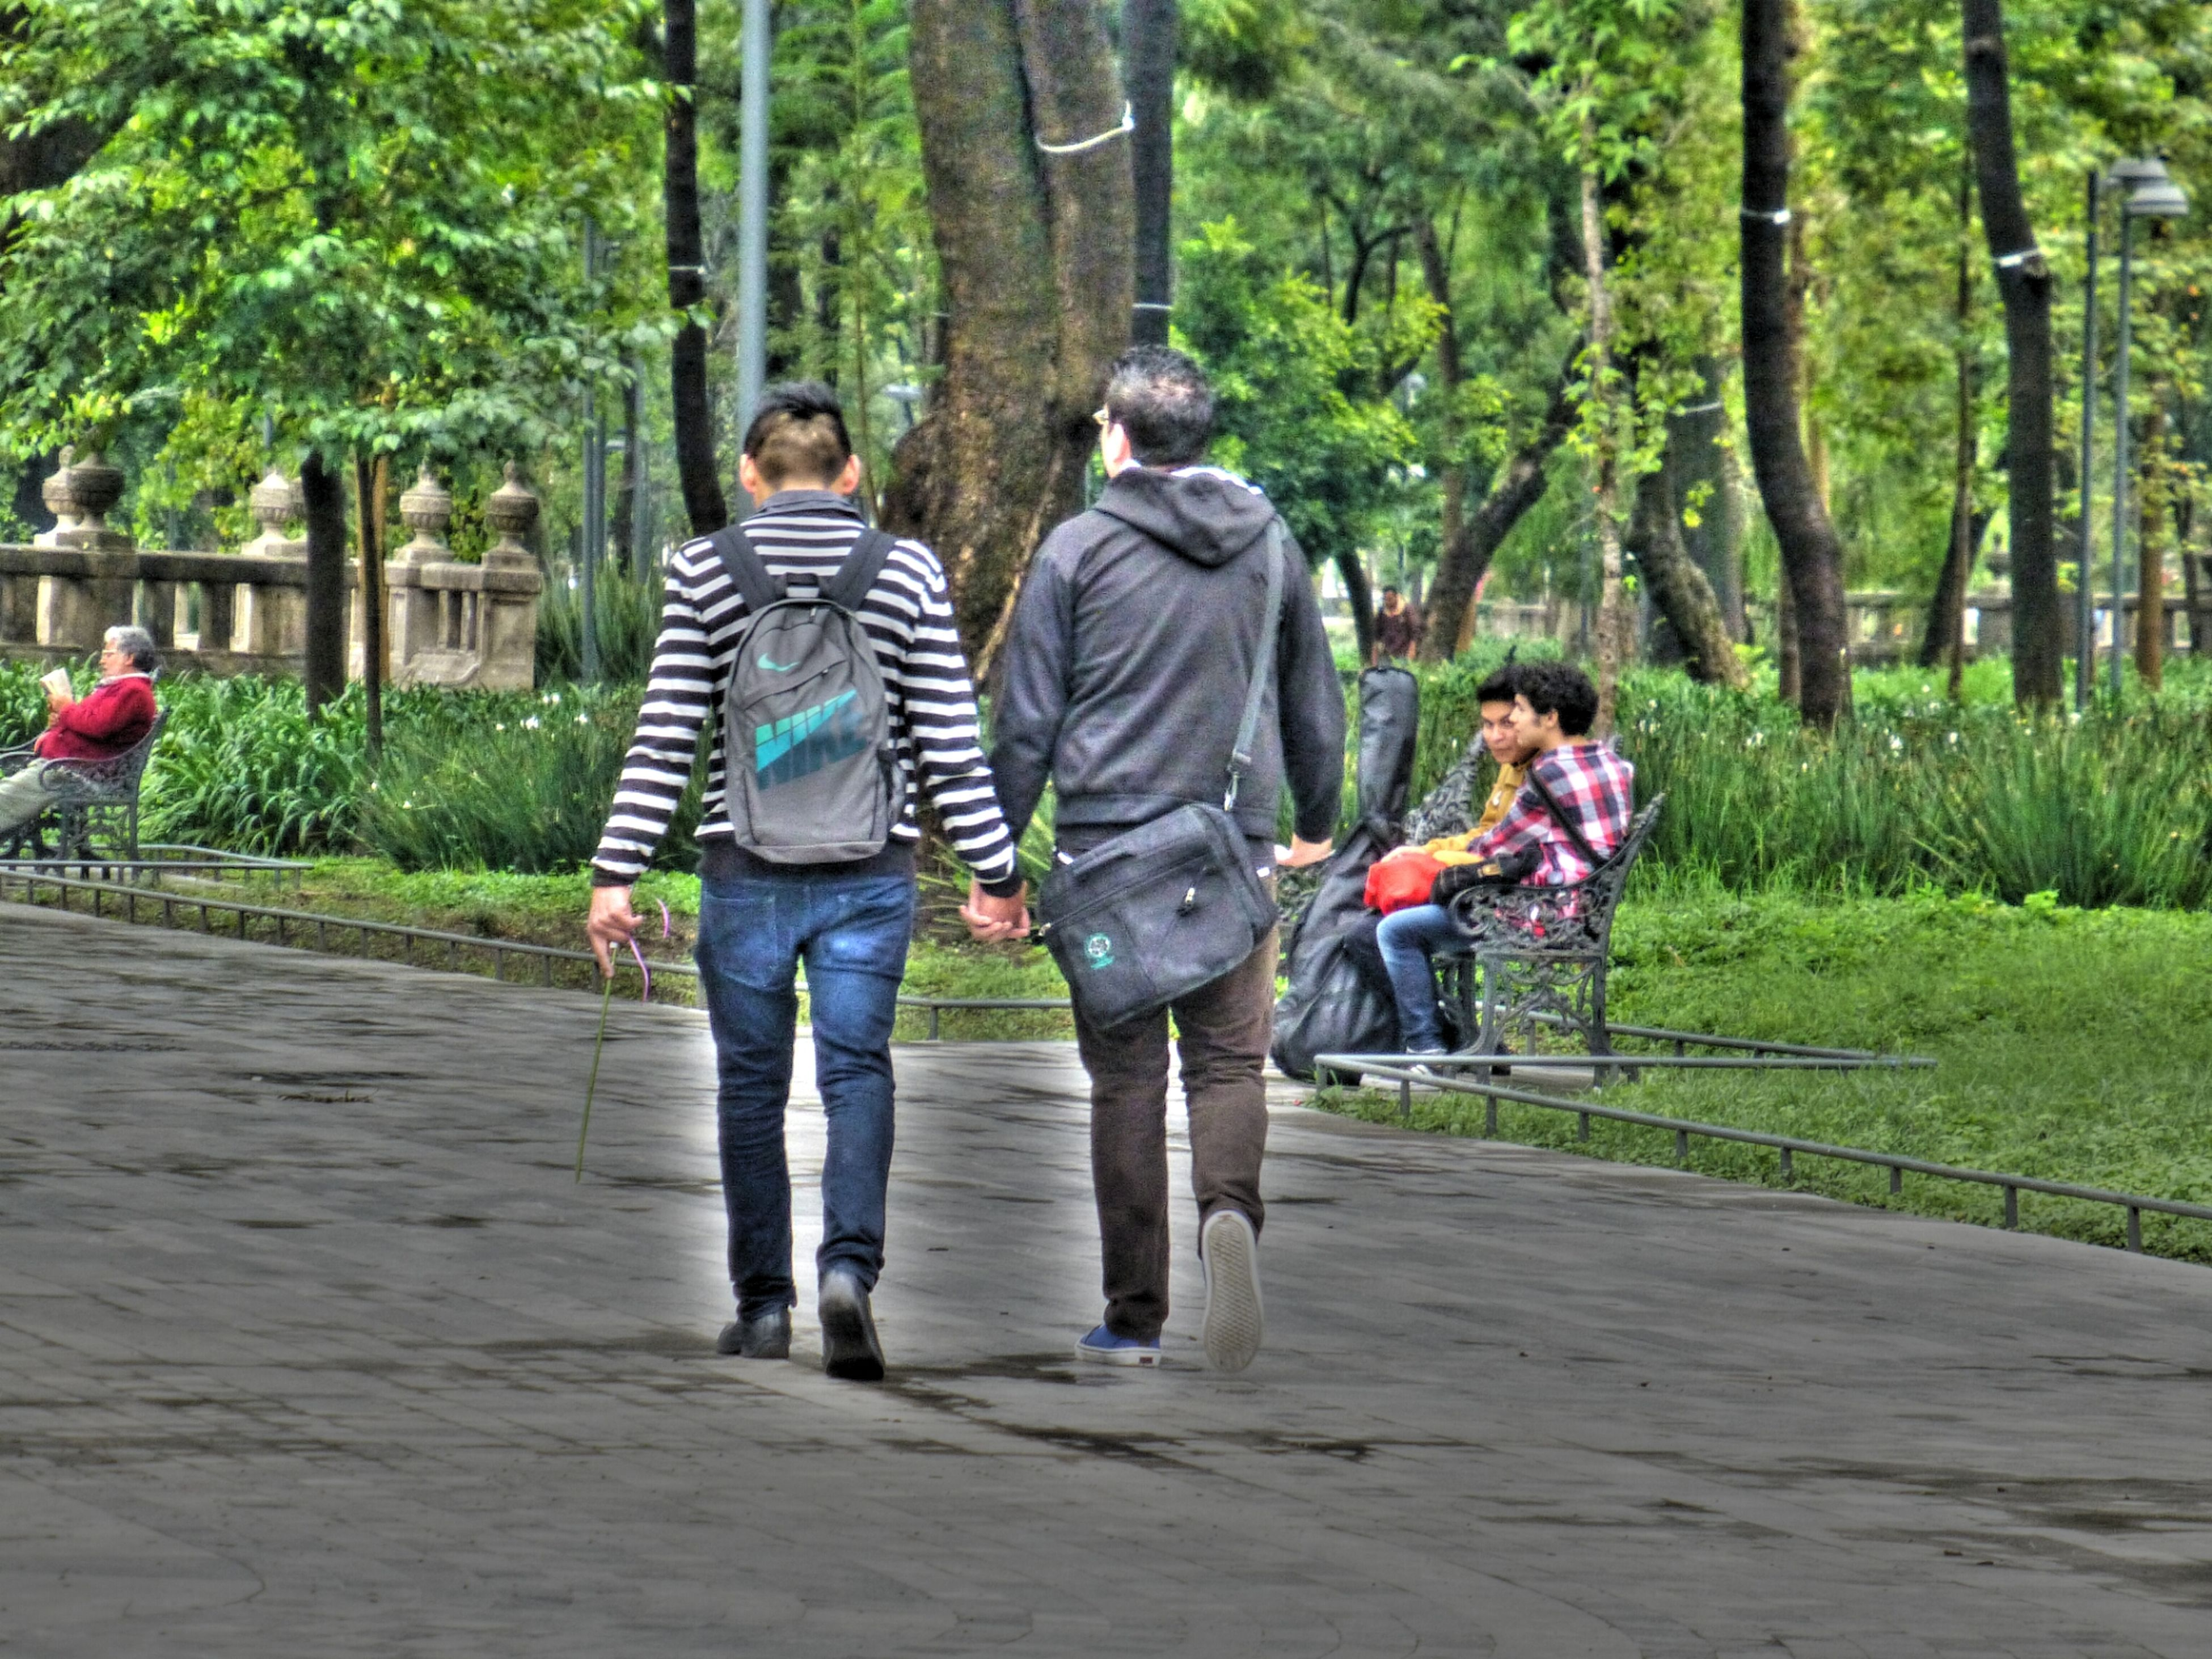 full length, tree, rear view, lifestyles, leisure activity, togetherness, casual clothing, walking, bonding, the way forward, person, men, love, footpath, park - man made space, holding hands, tree trunk, growth